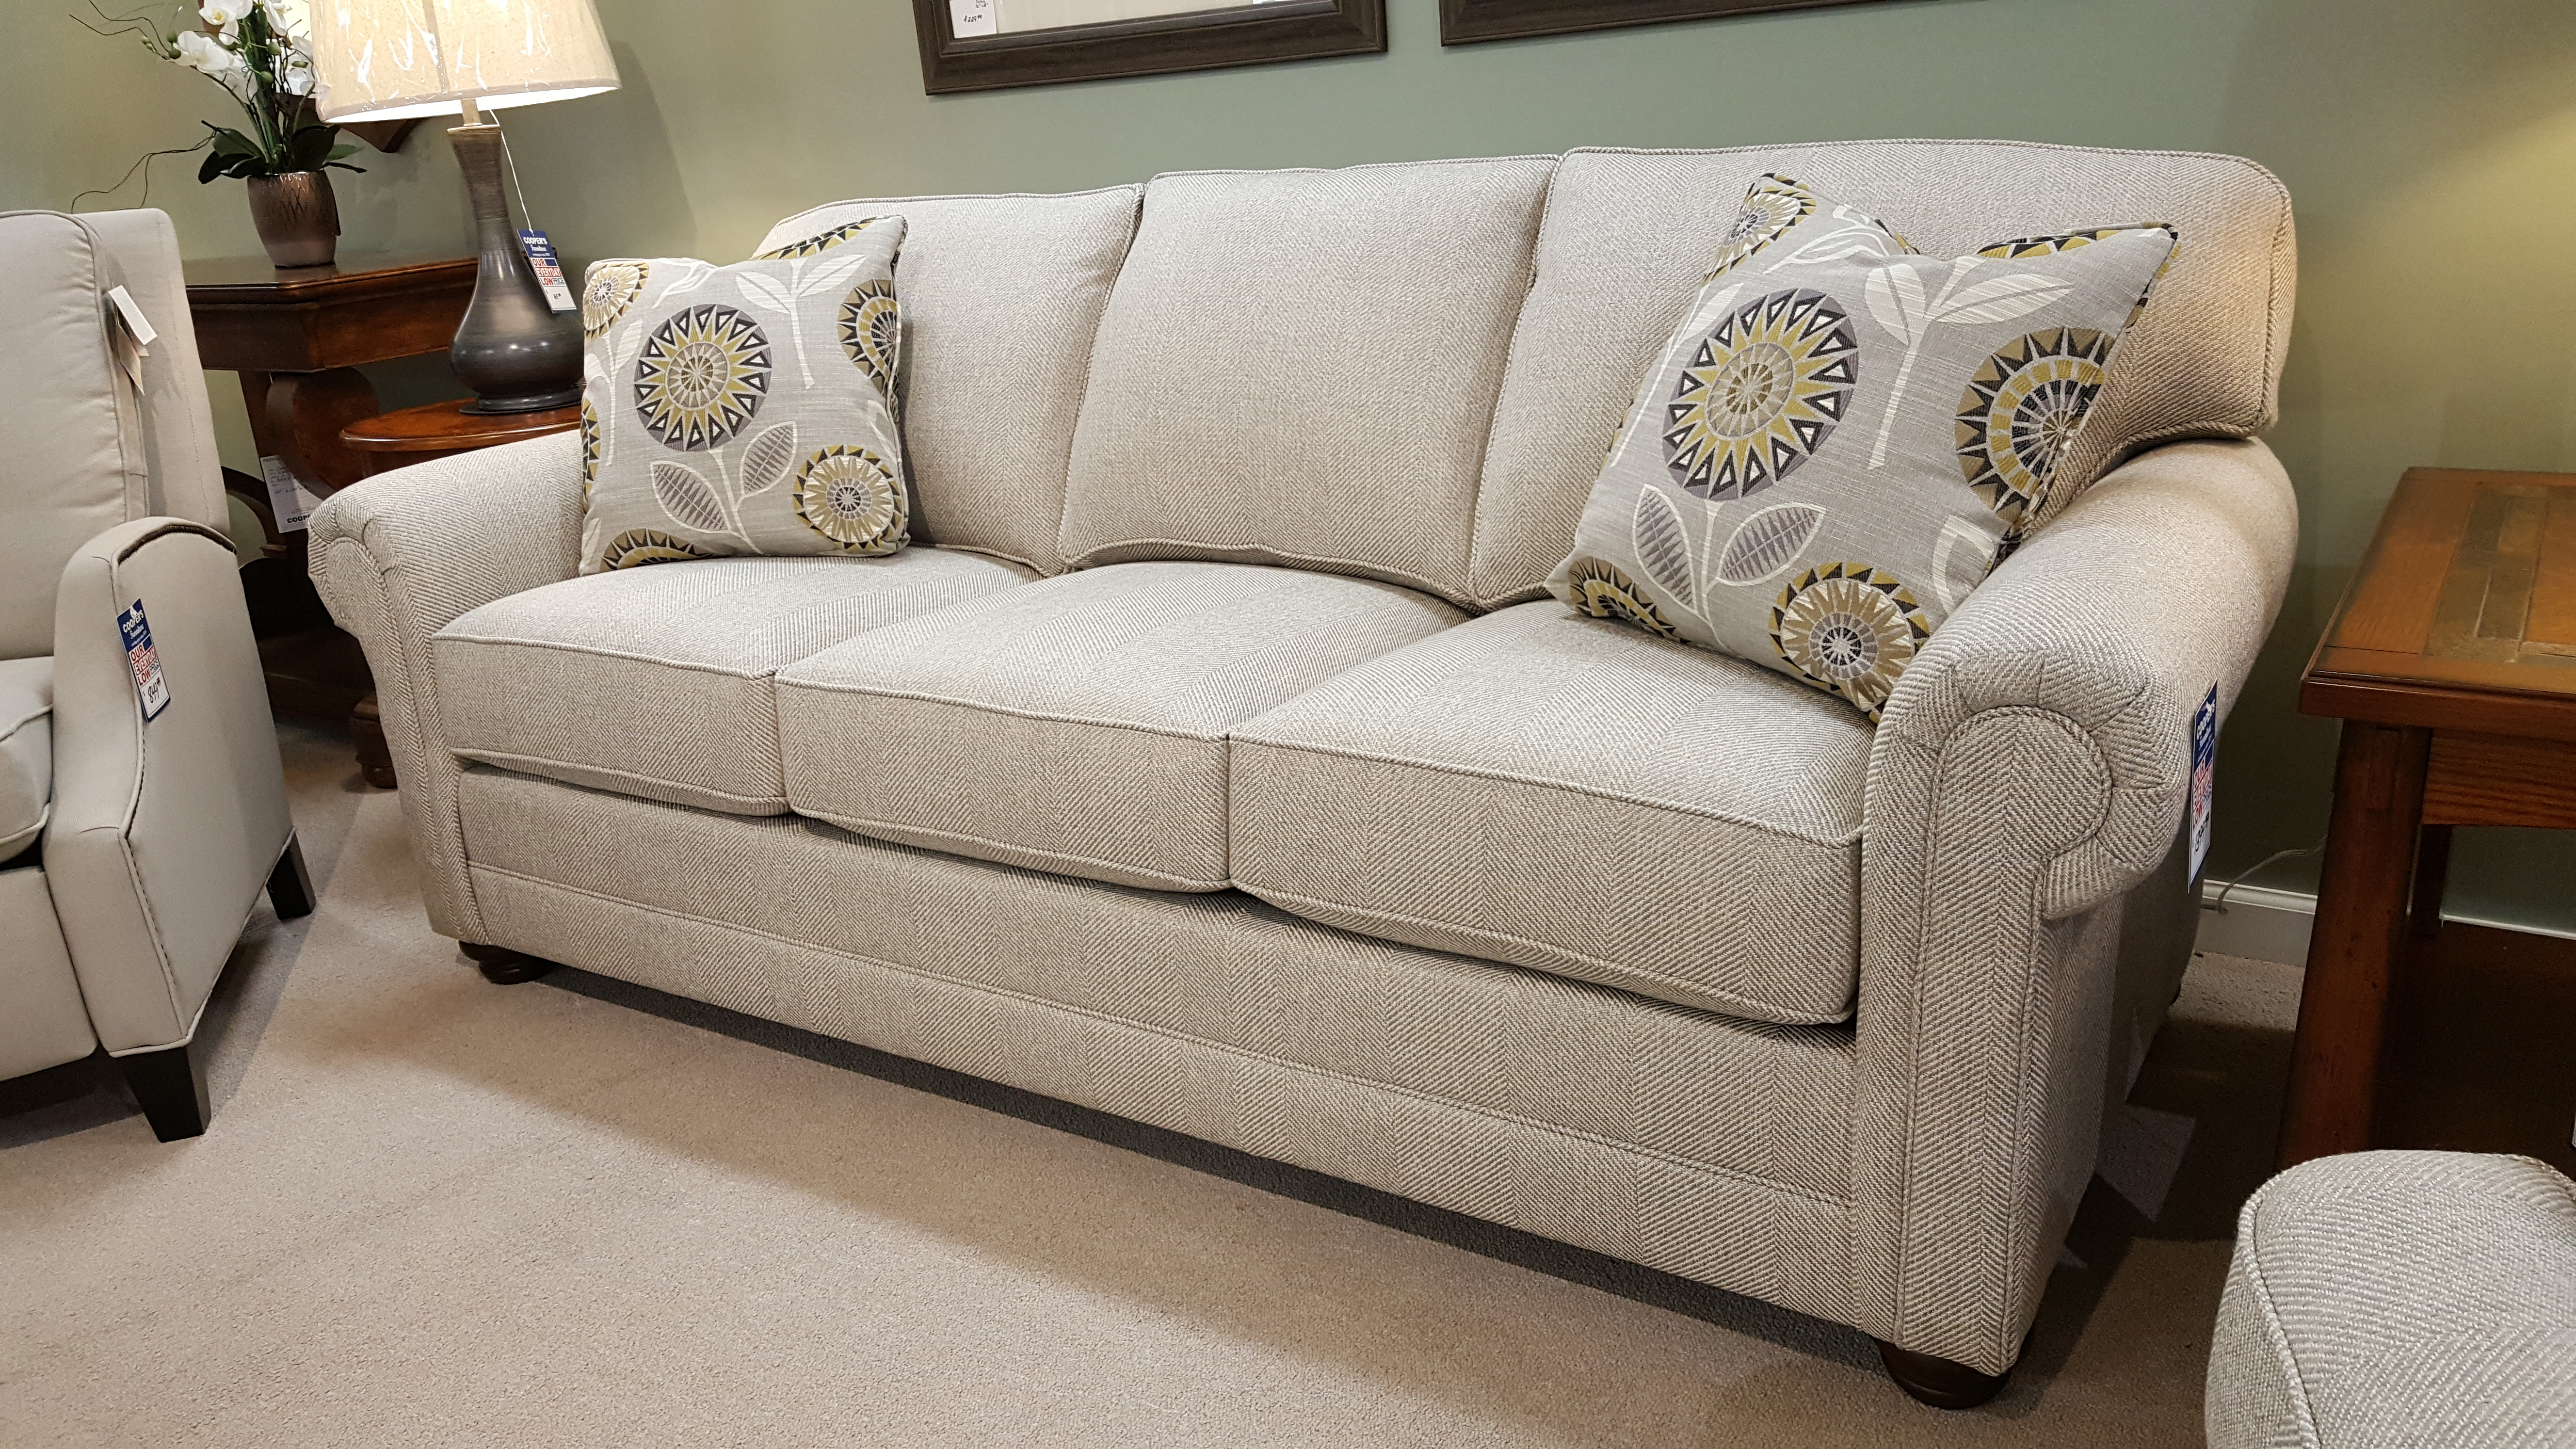 Living Room Furniture Sectionals living room furniture cary nc | sofas, recliners, sectionals